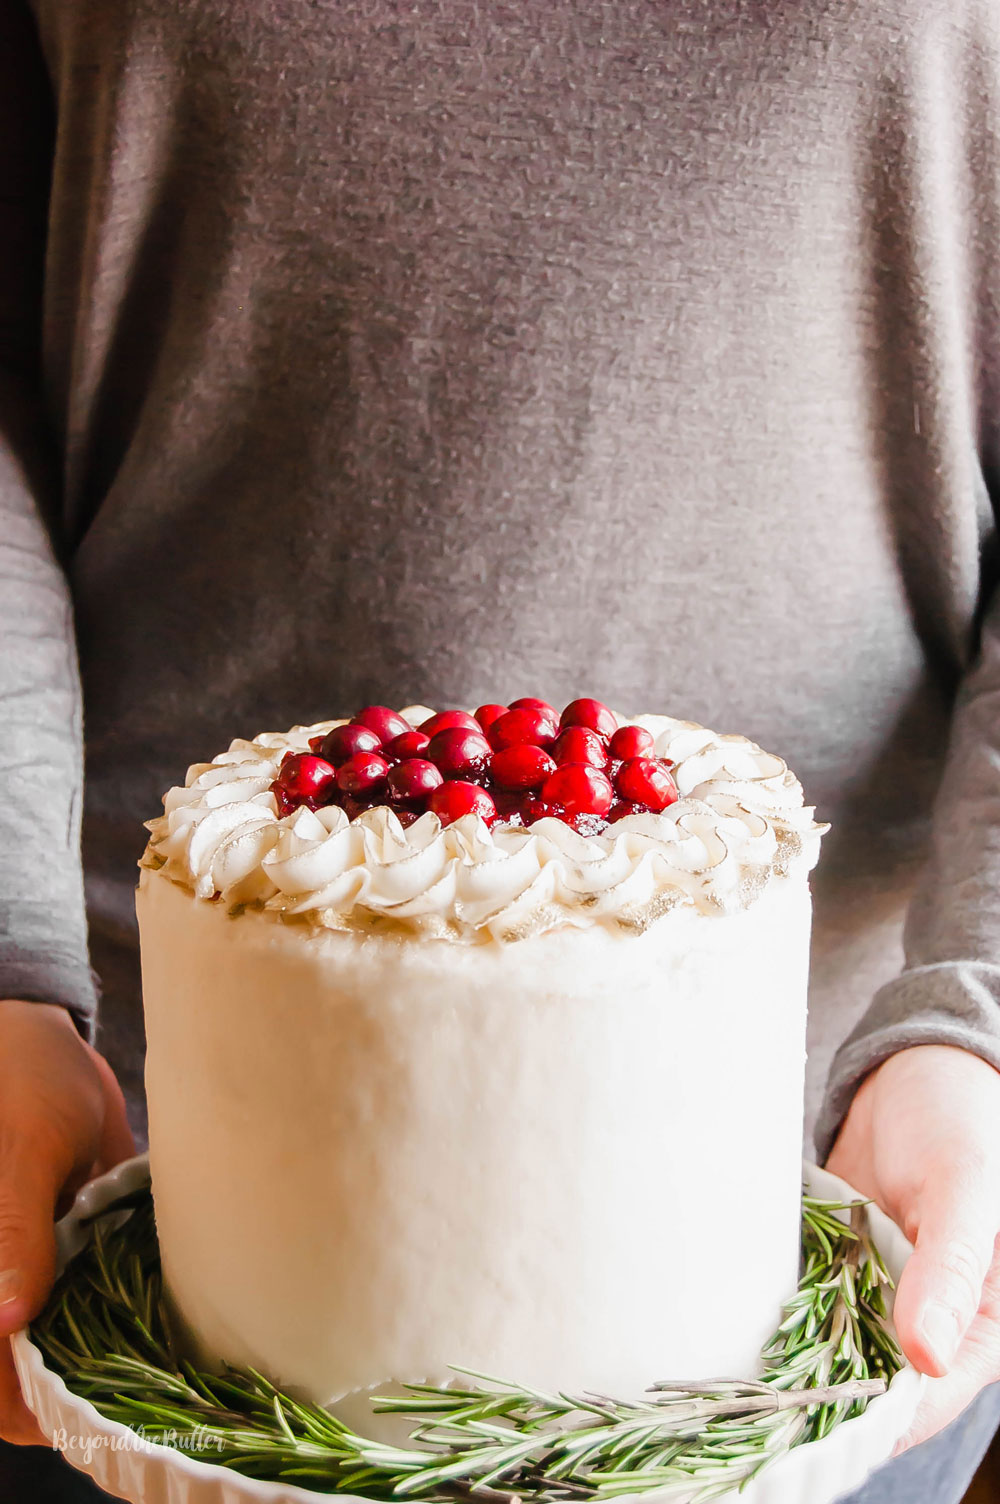 Gingerbread Cake | Person holding Gingerbread Cake with Maple Buttercream Frosting and Cranberry Compote on a cake stand | Image Credit: Beyond the Butter, LLC